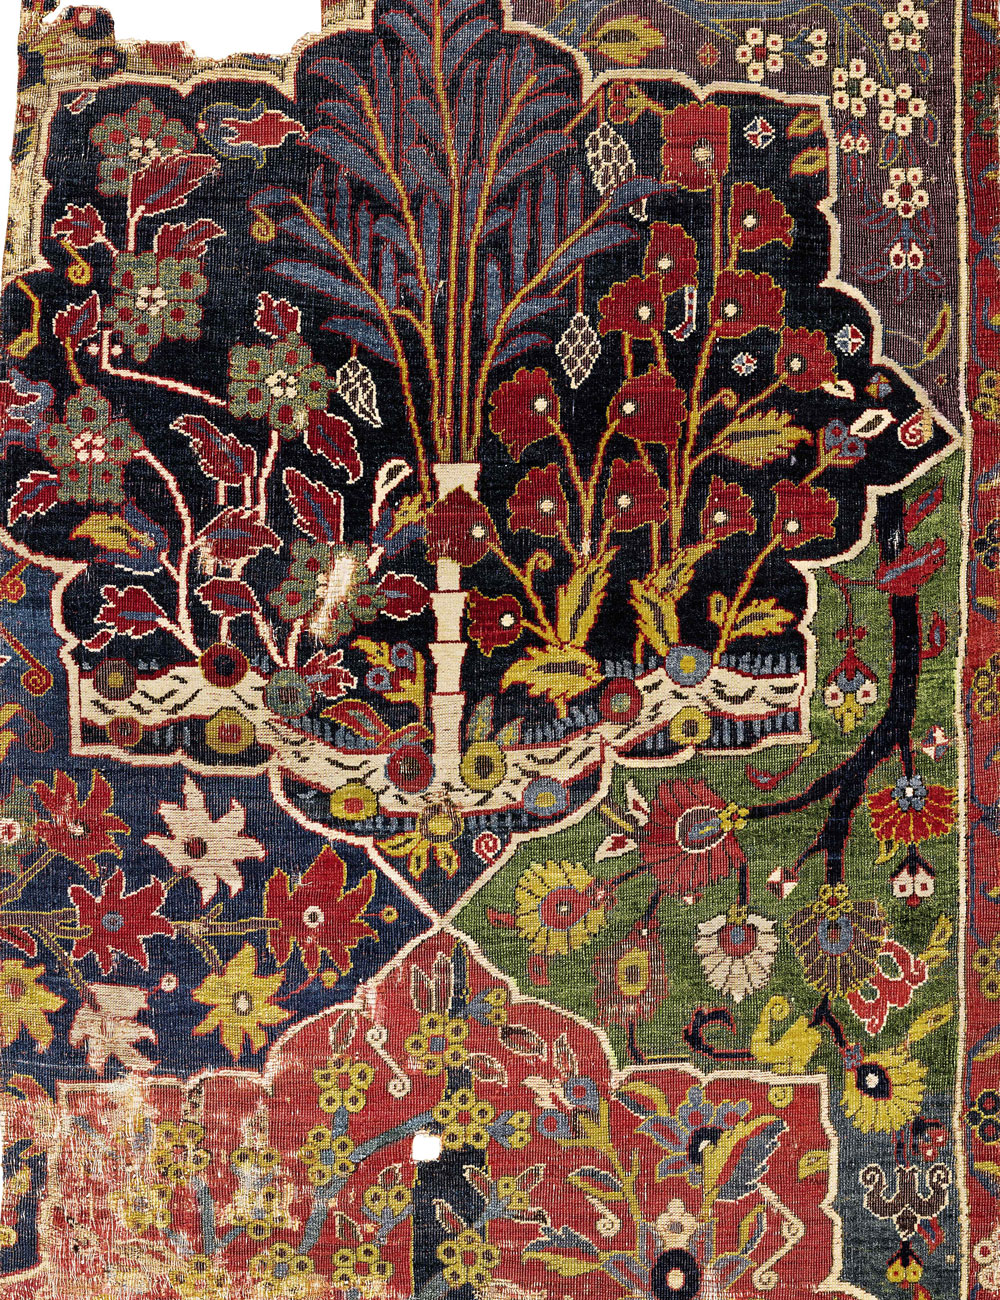 reLOT-241-The-Von-Hirsch-Tree-carpet,-a-fragment